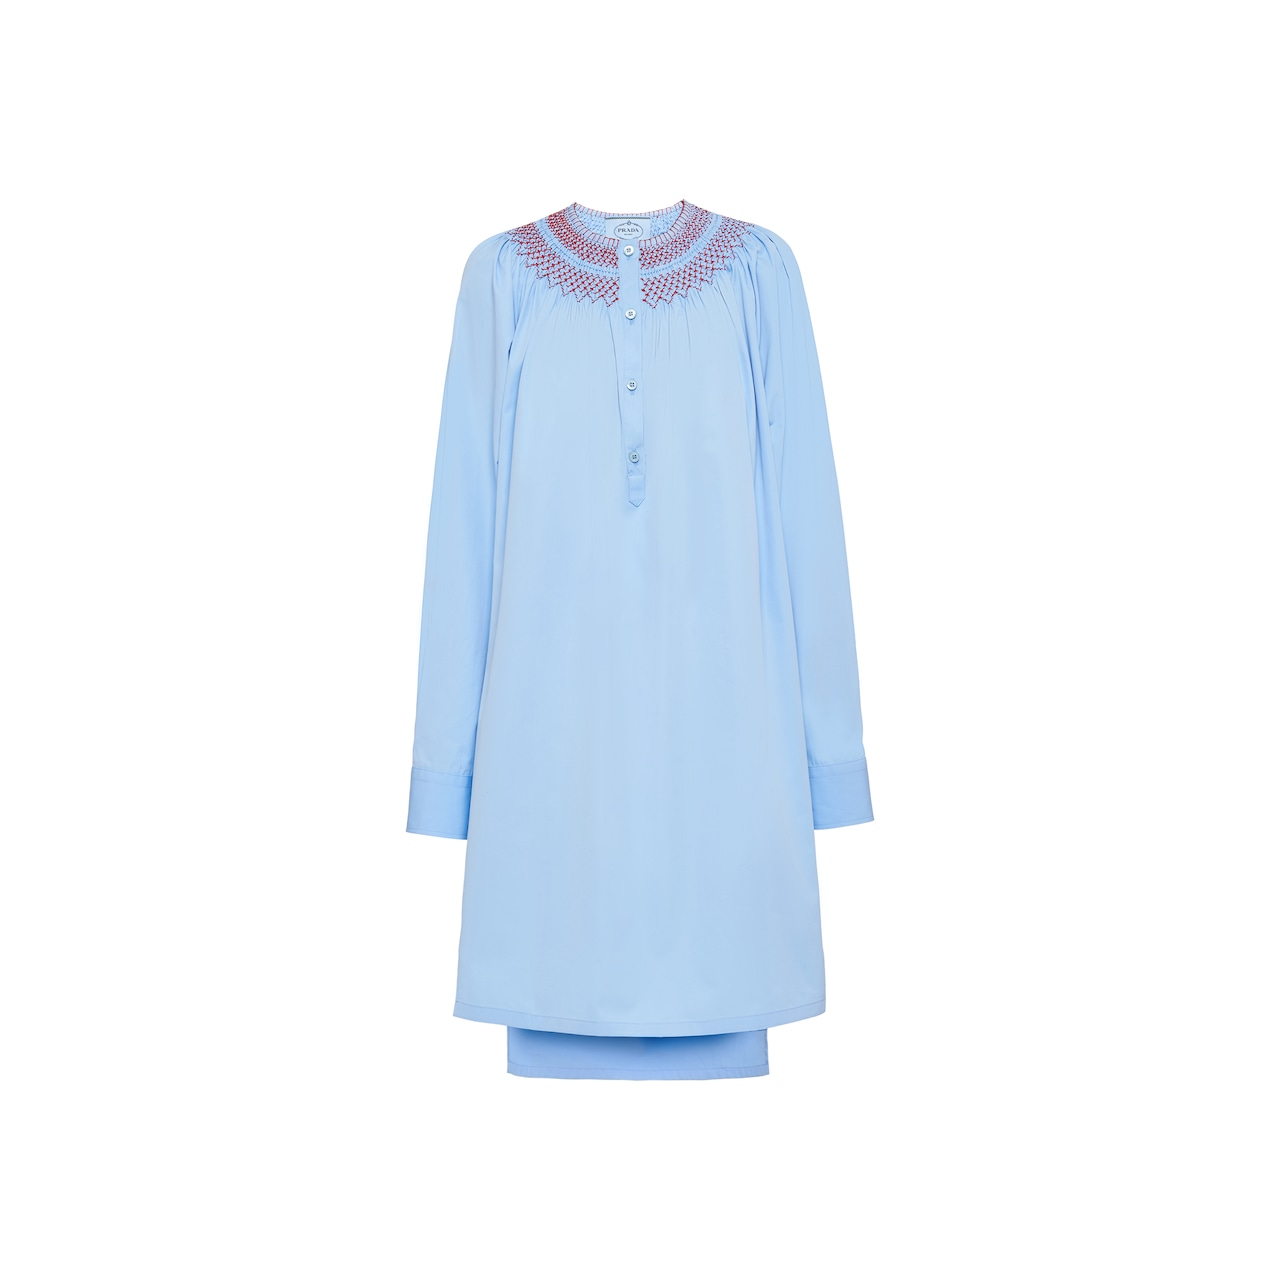 Prada Egyptian cotton popelin dress with embroidery 1